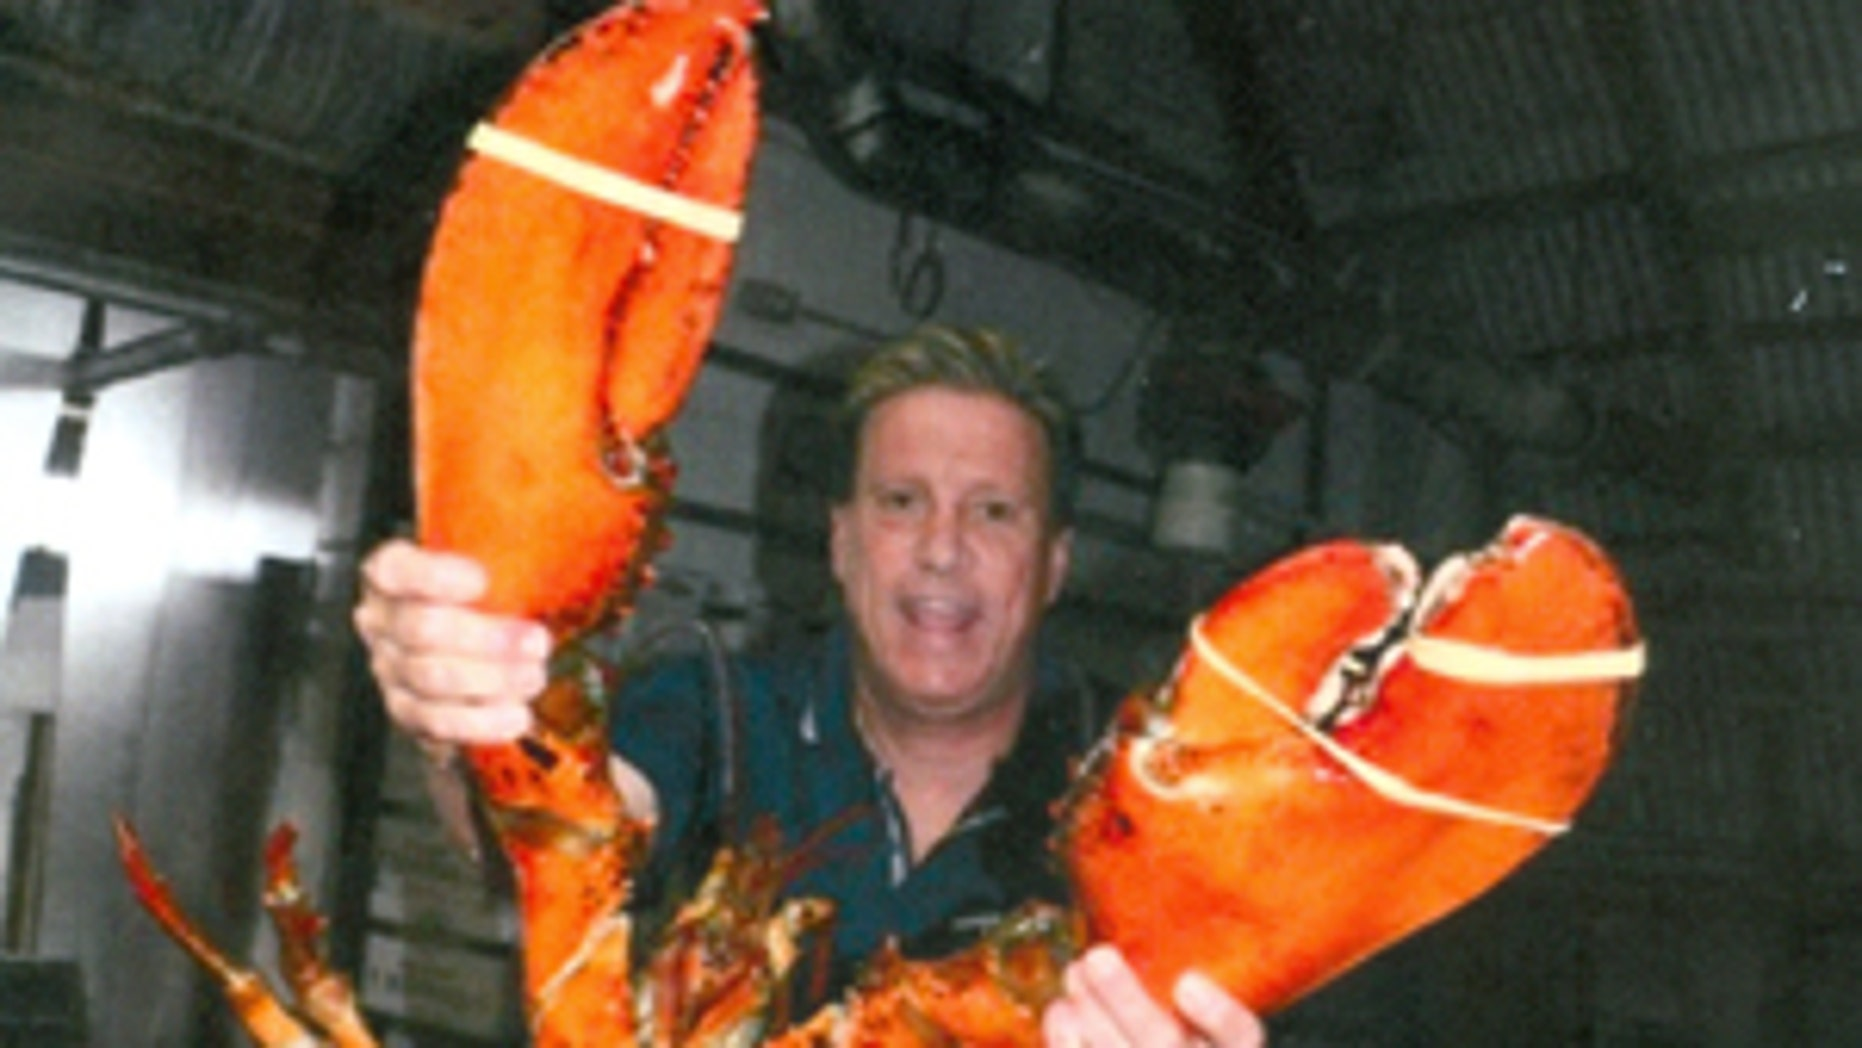 This giant lobster was weighs in at a whopping 23 lbs and is estimated to be 95 years old.